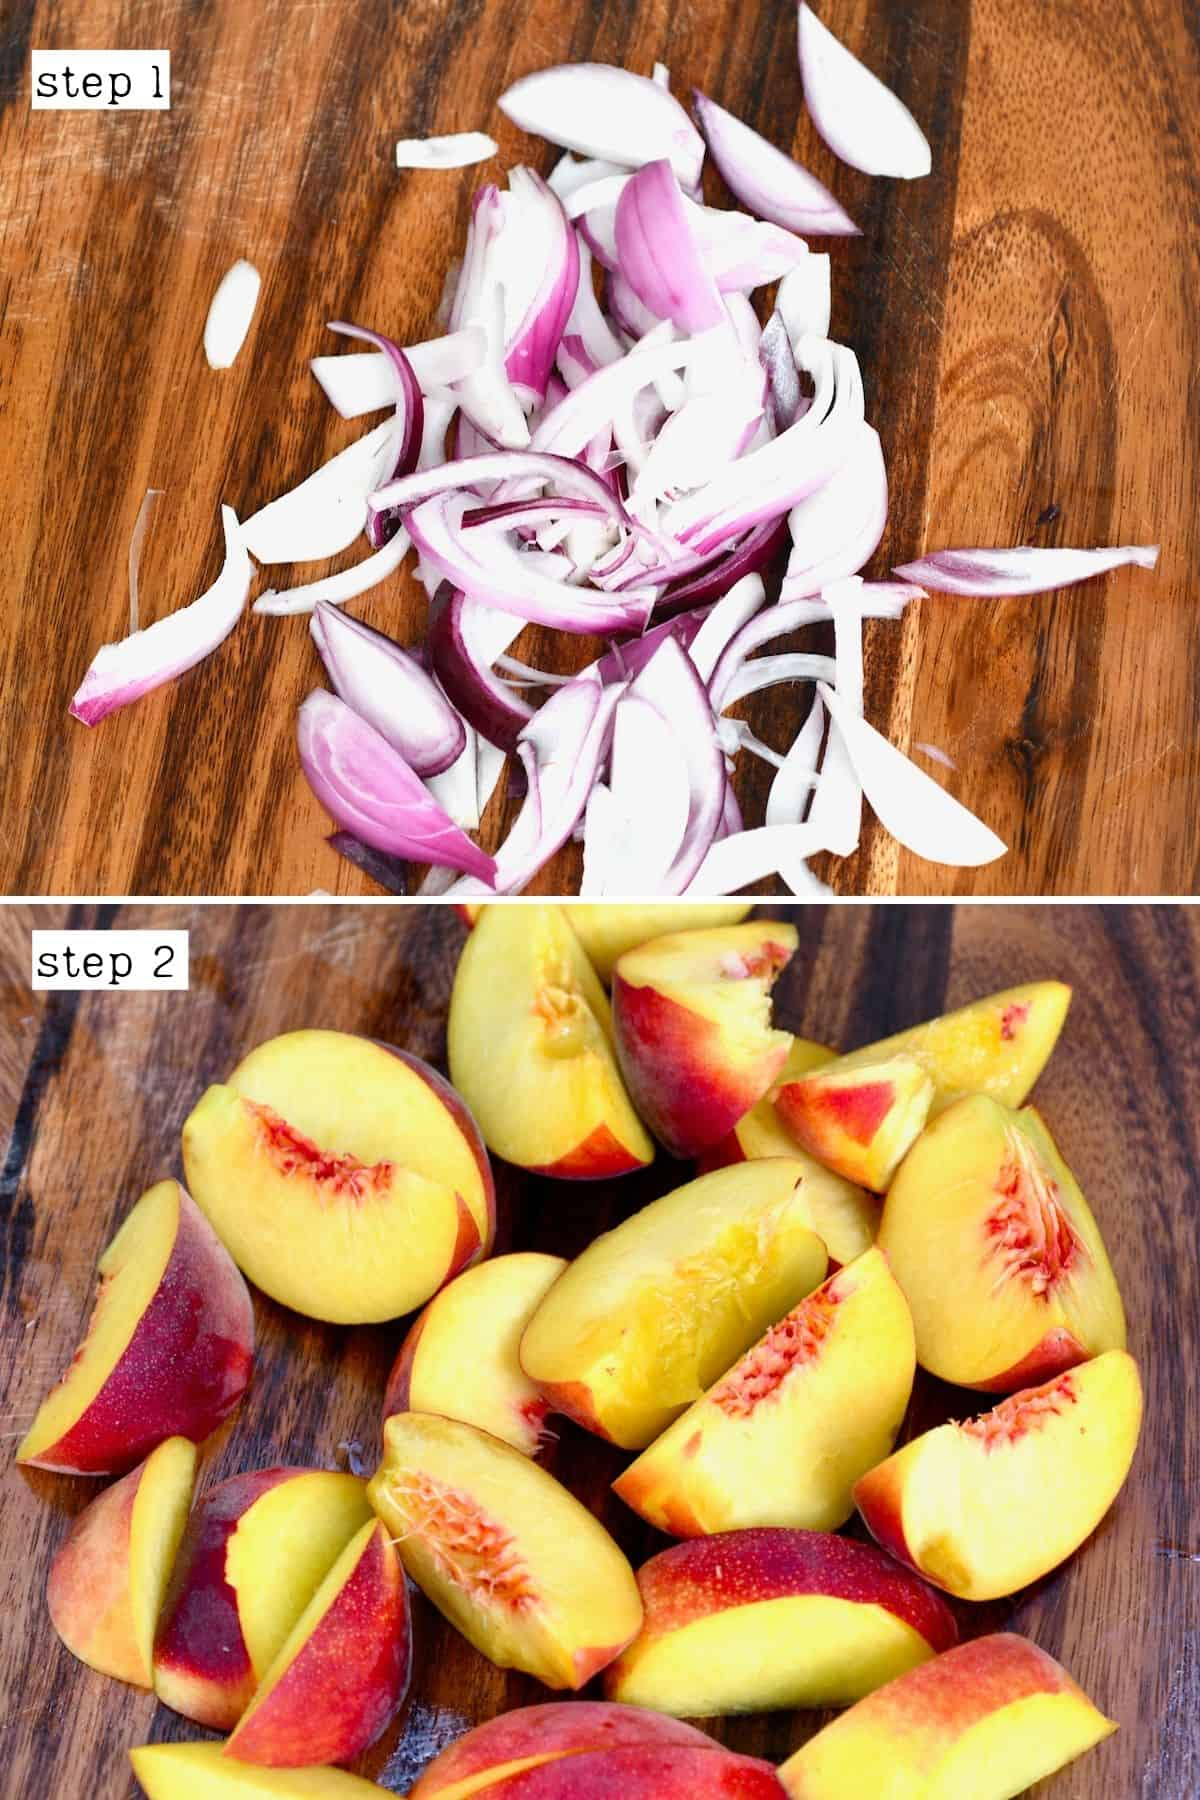 Sliced onions and peaches